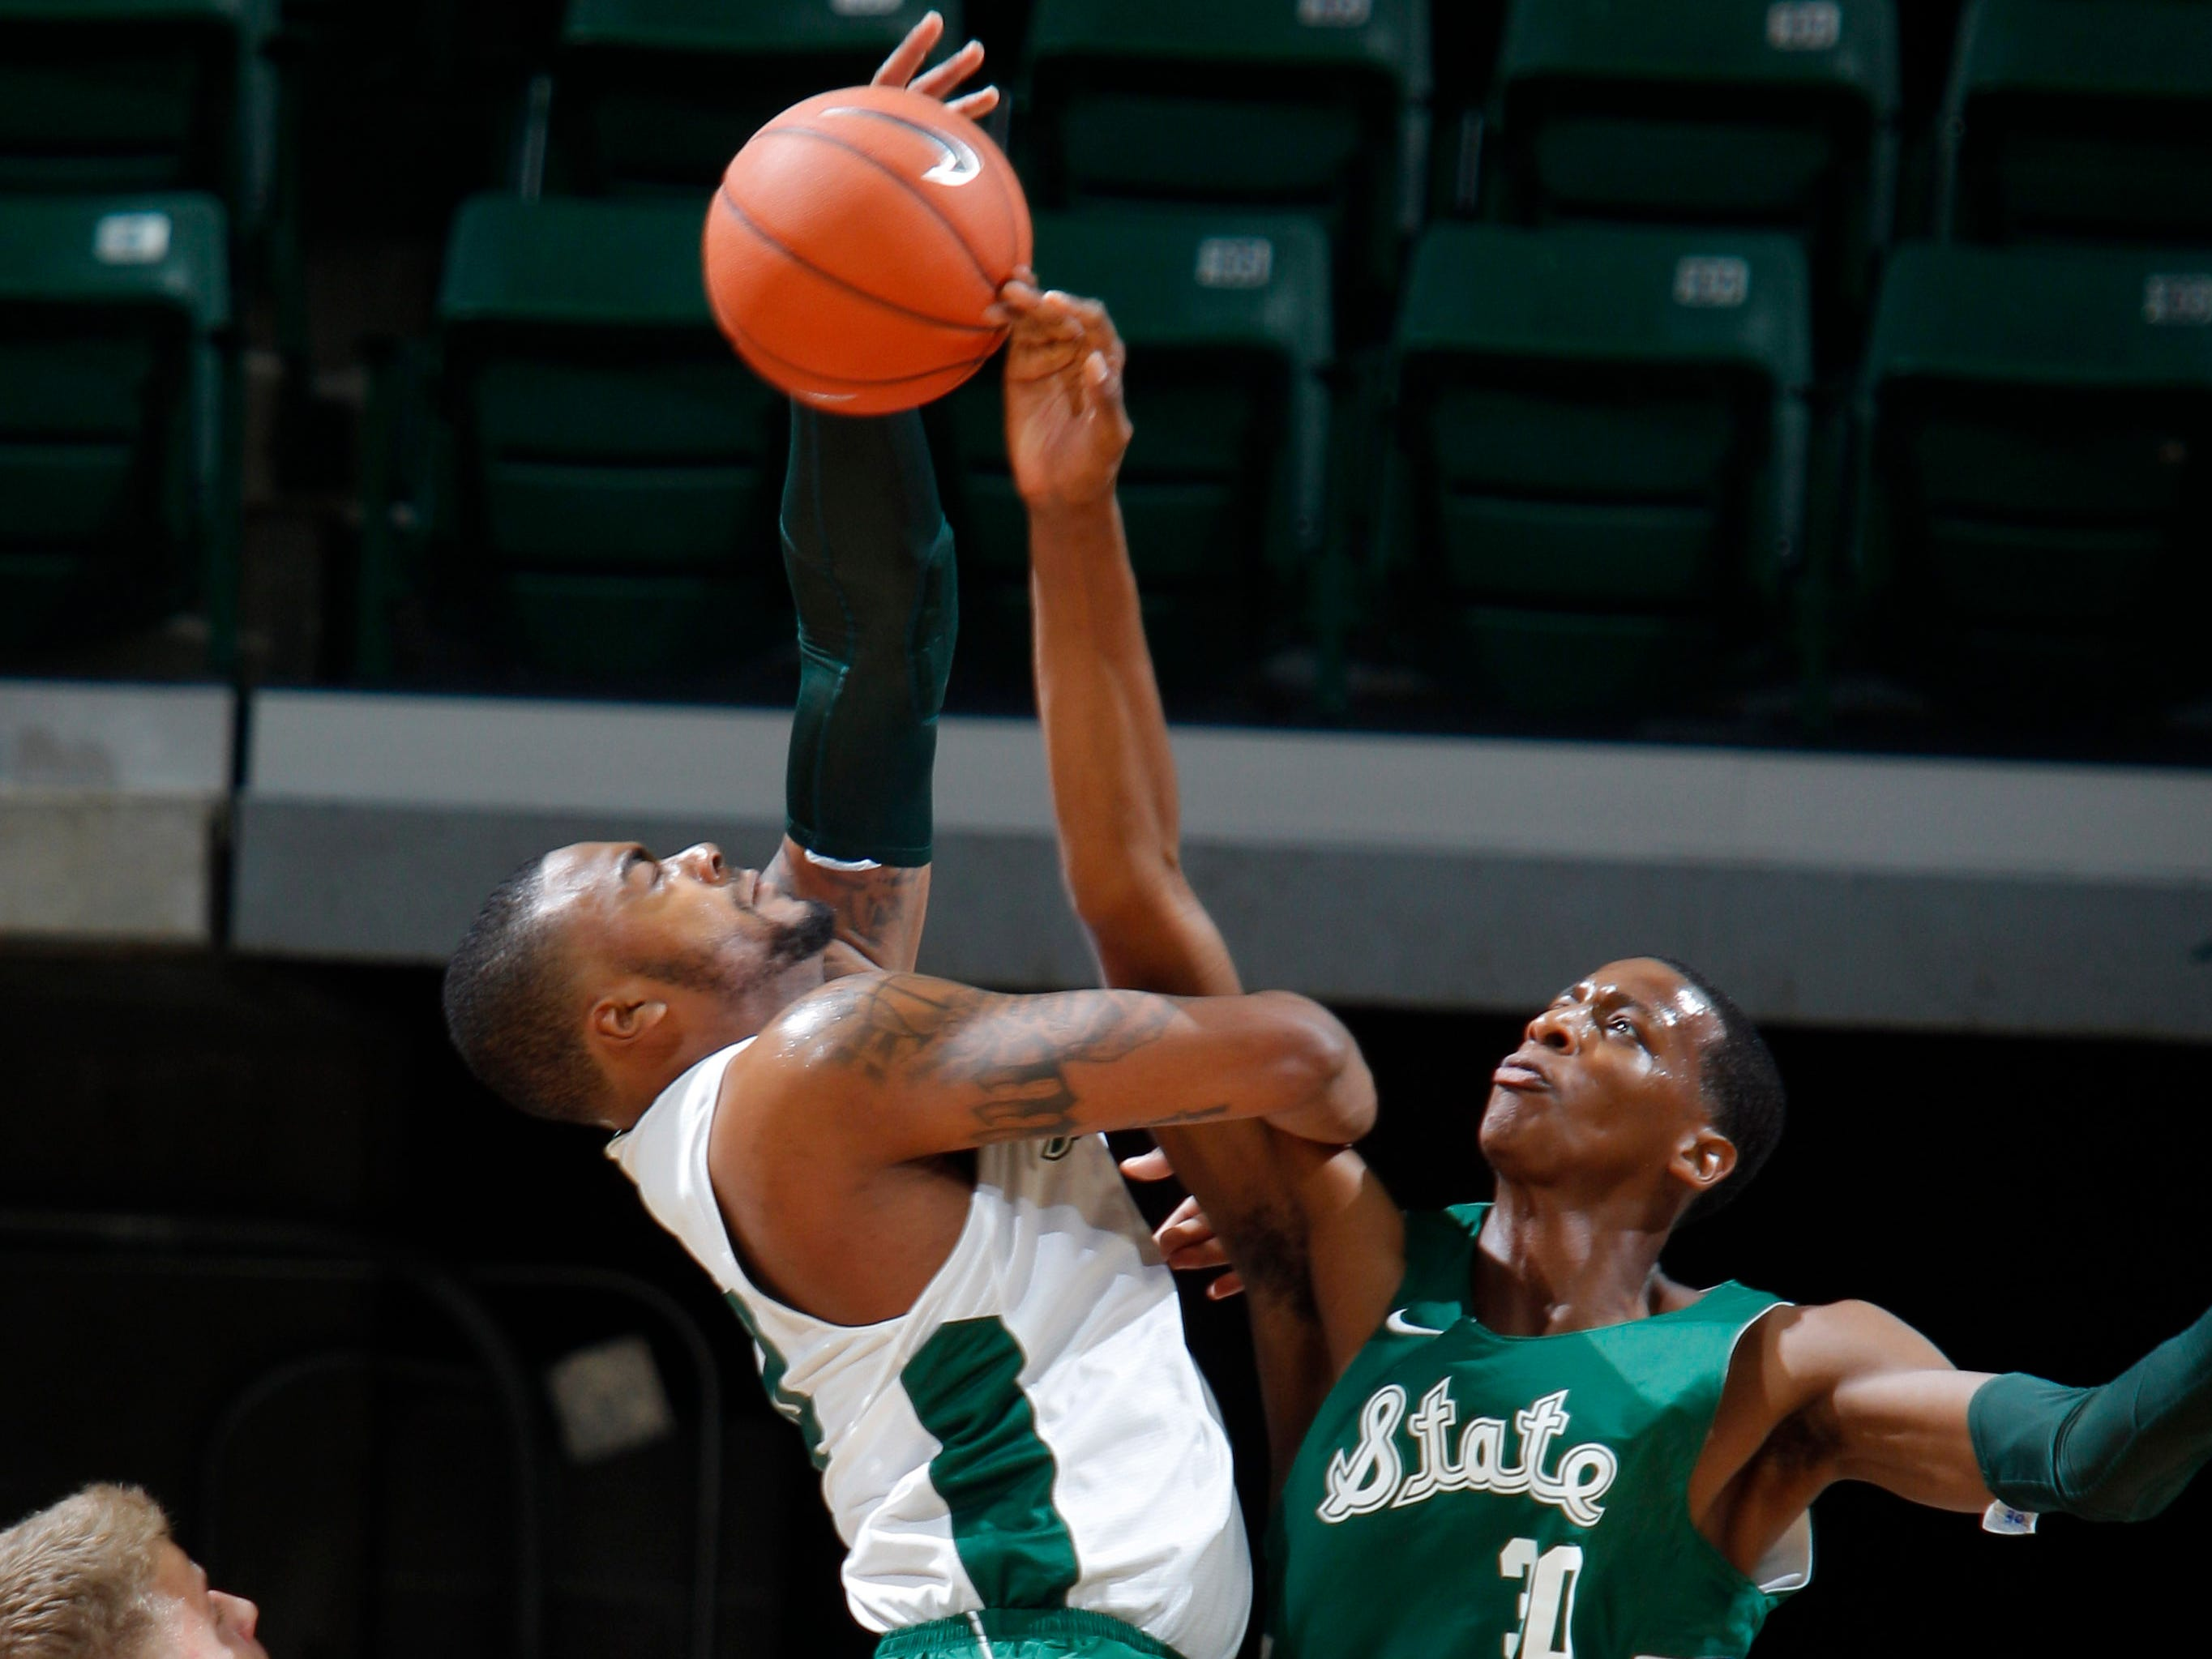 Michigan State's Marcus Bingham Jr., right, blocks a shot by Nick Ward at MSU Madness, Saturday, Oct. 6, 2018, in East Lansing, Mich.